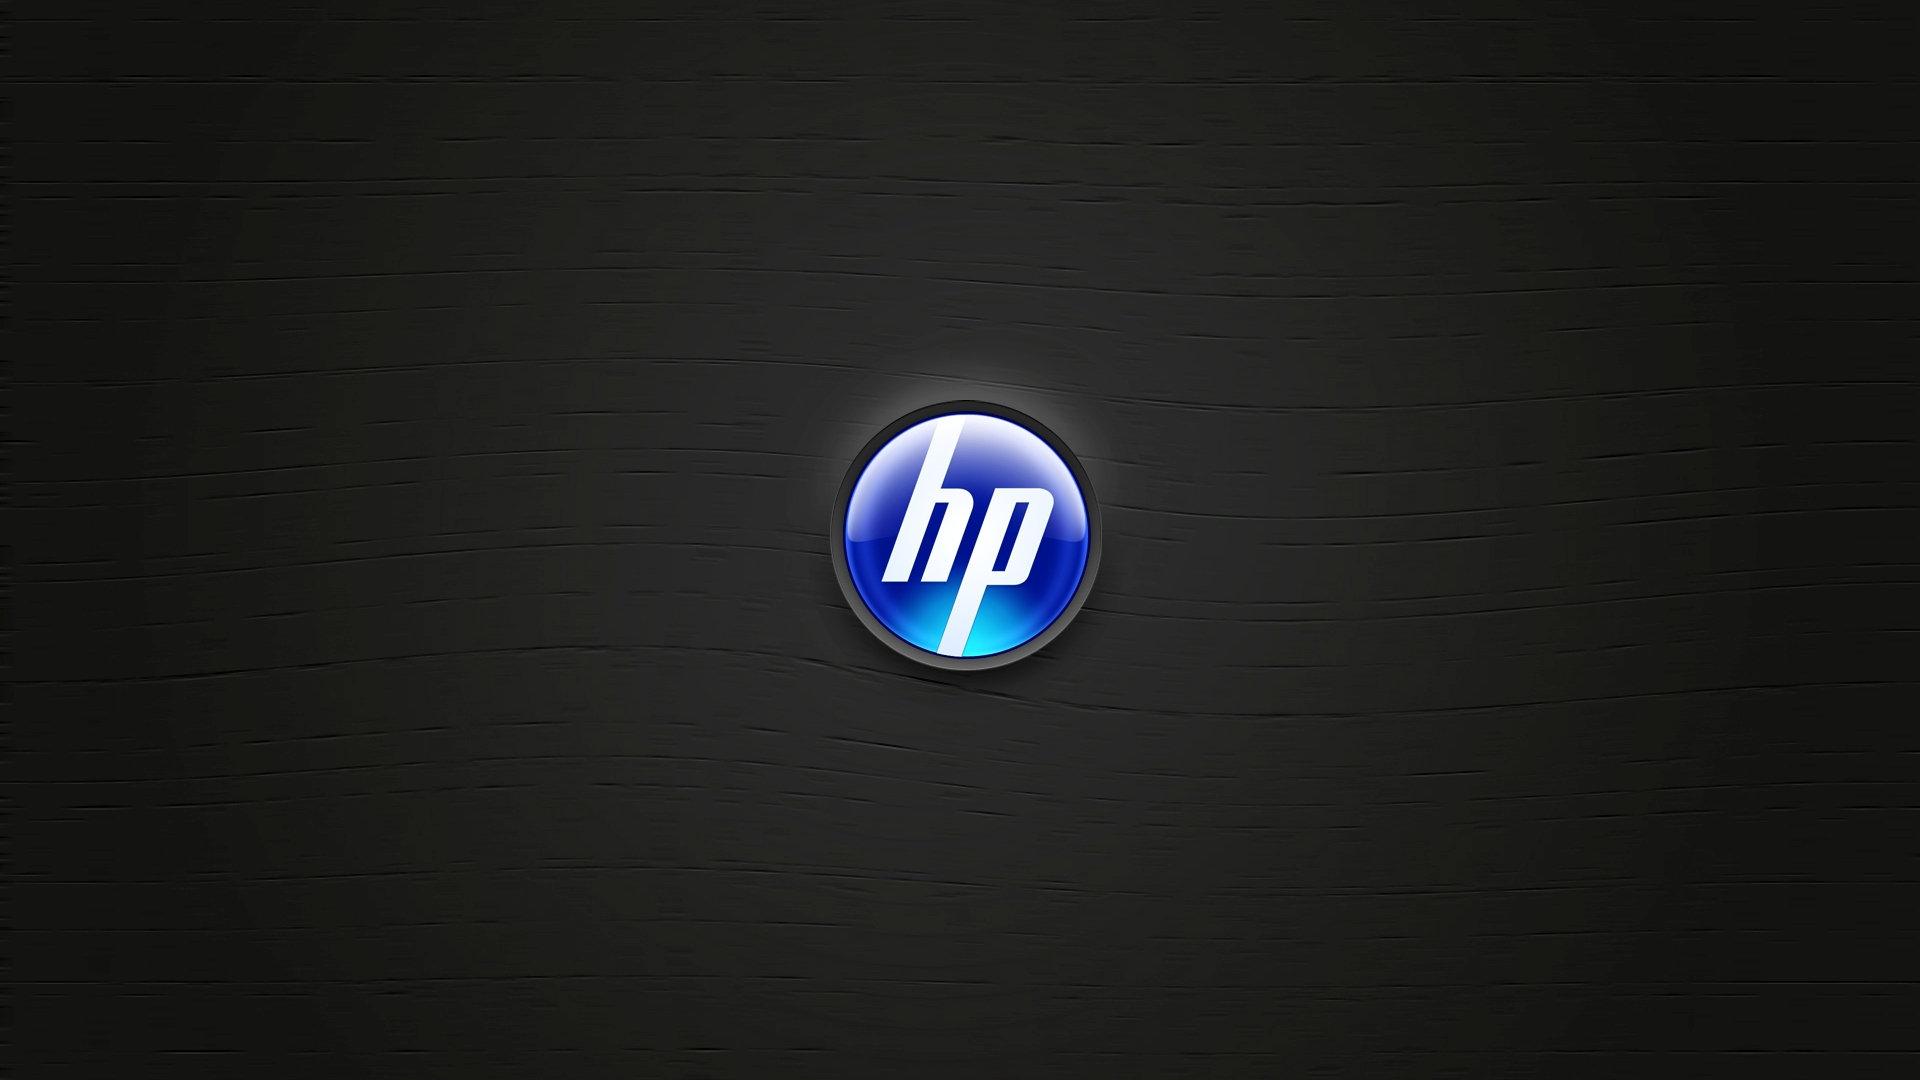 Wallpaper For Hp Posted By John Sellers